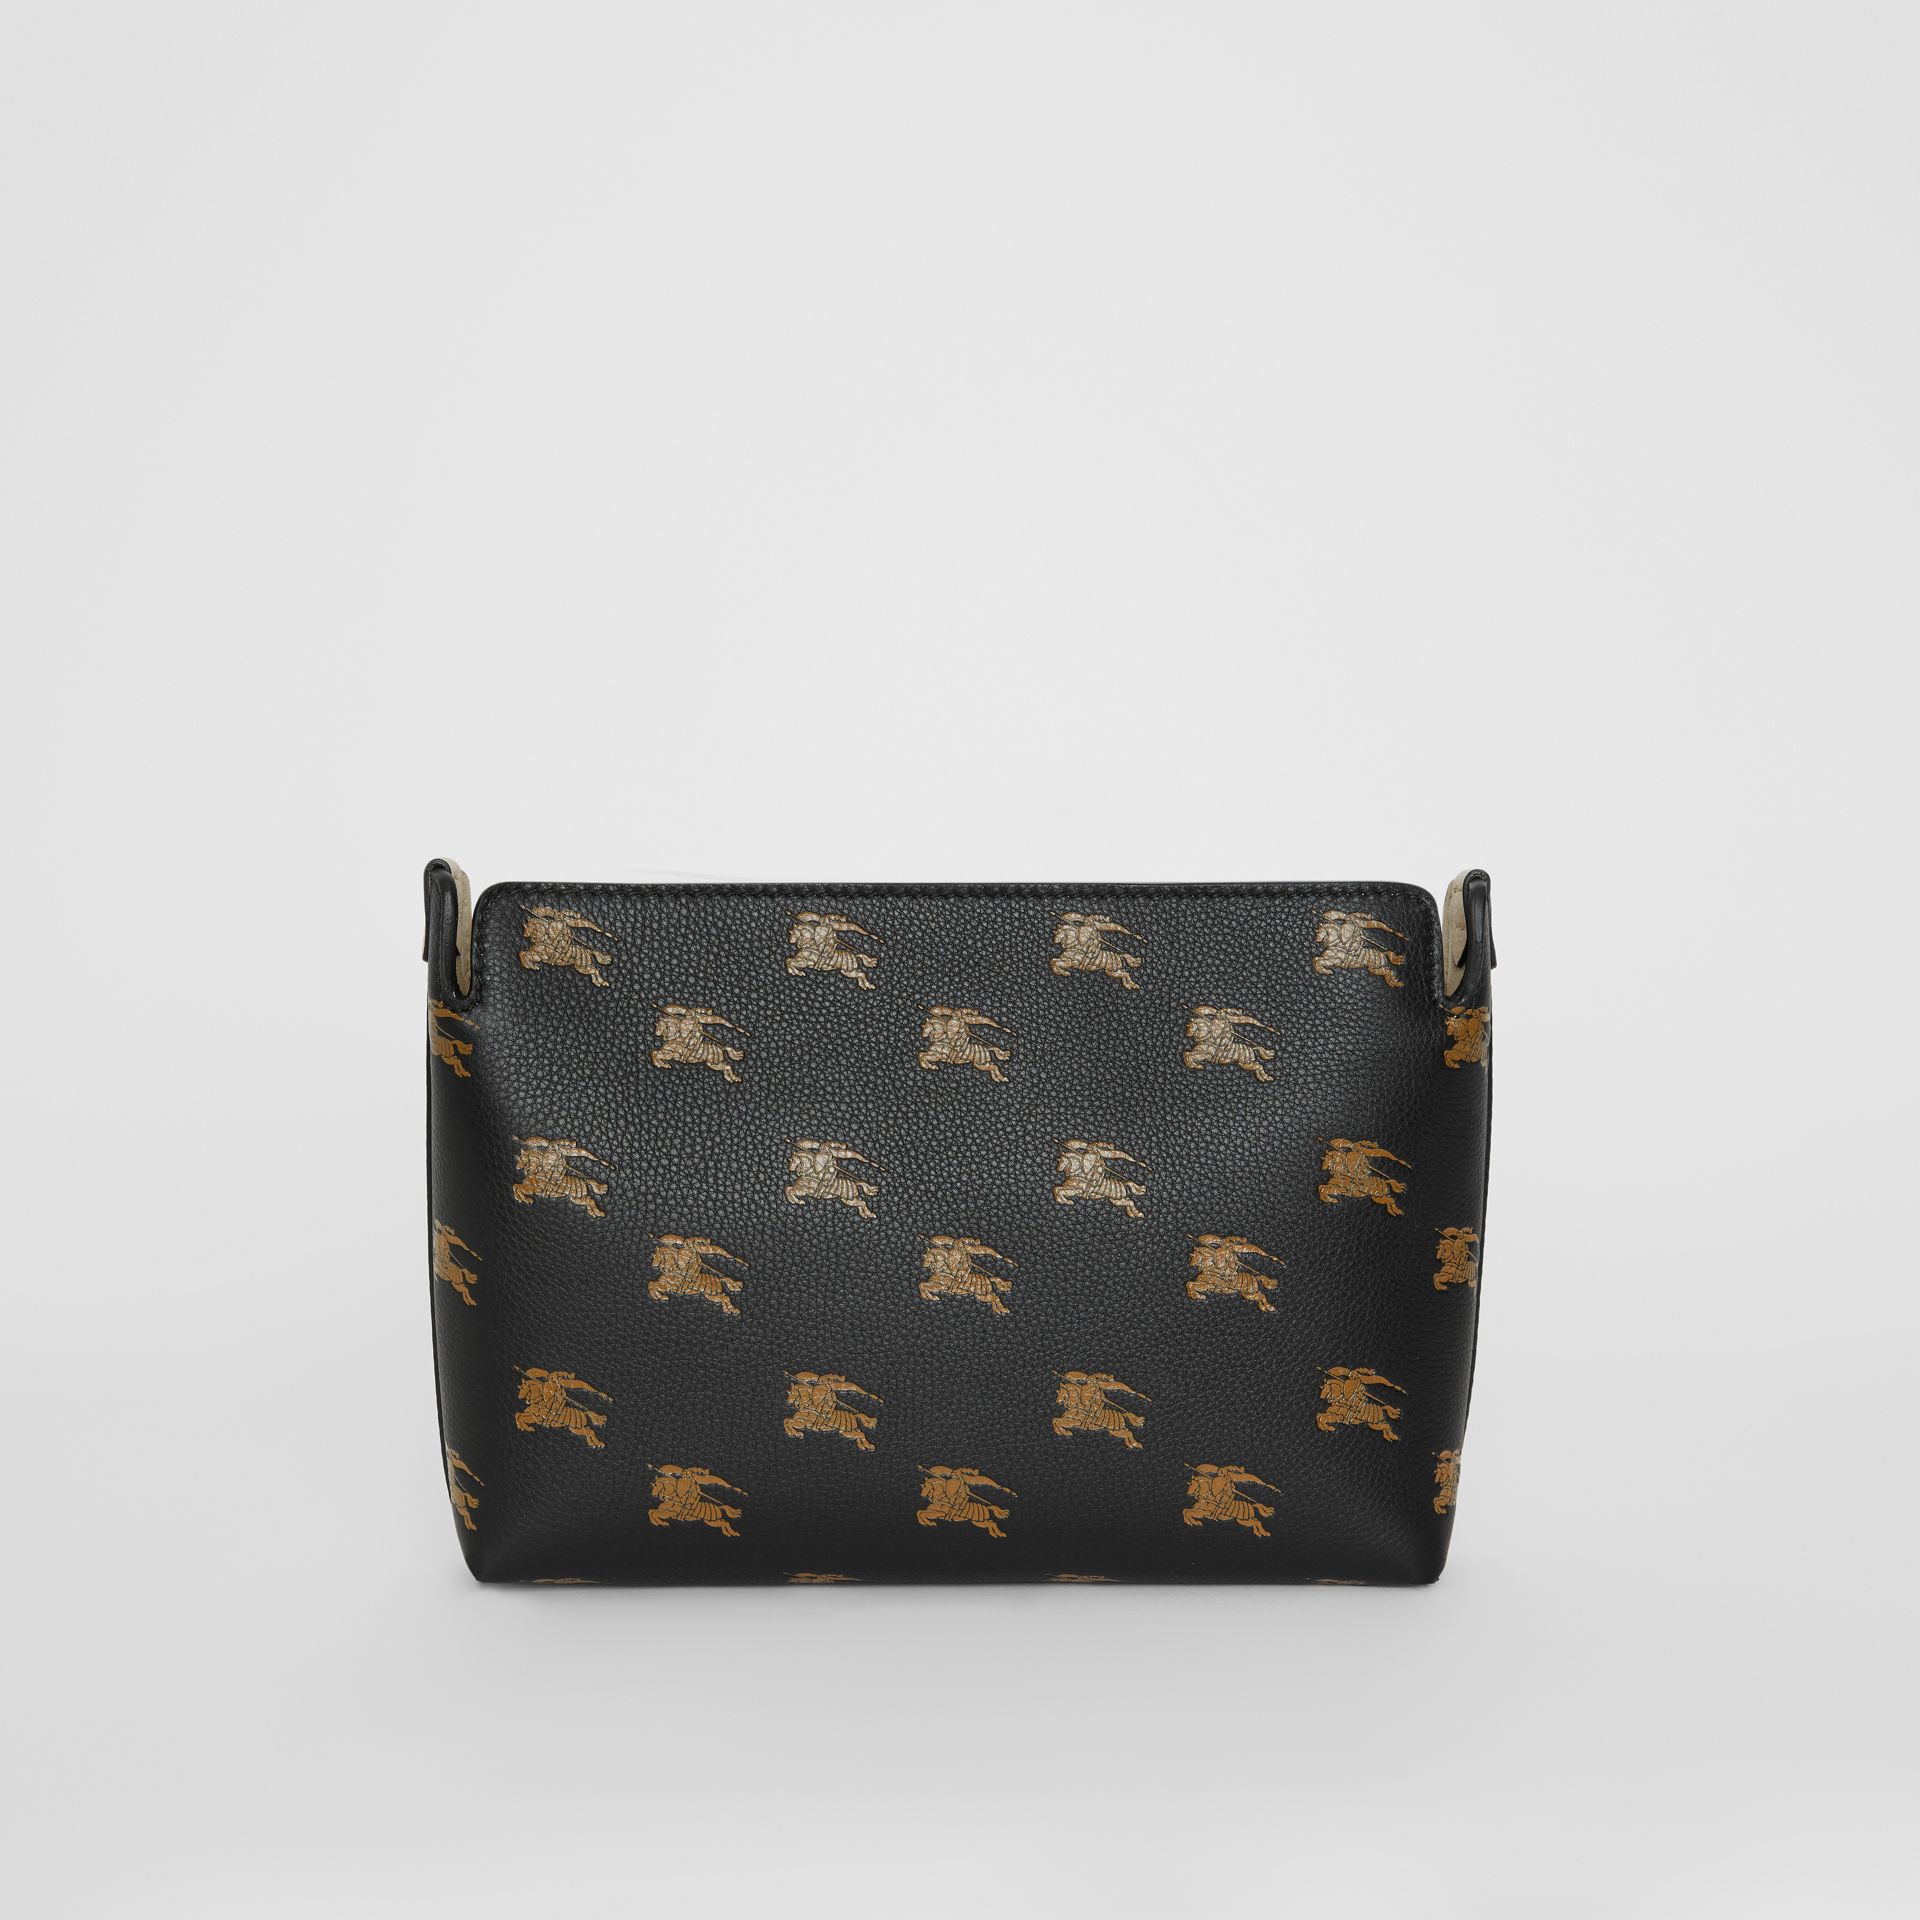 Medium Equestrian Knight Leather Clutch in Black - Women | Burberry United Kingdom - gallery image 7